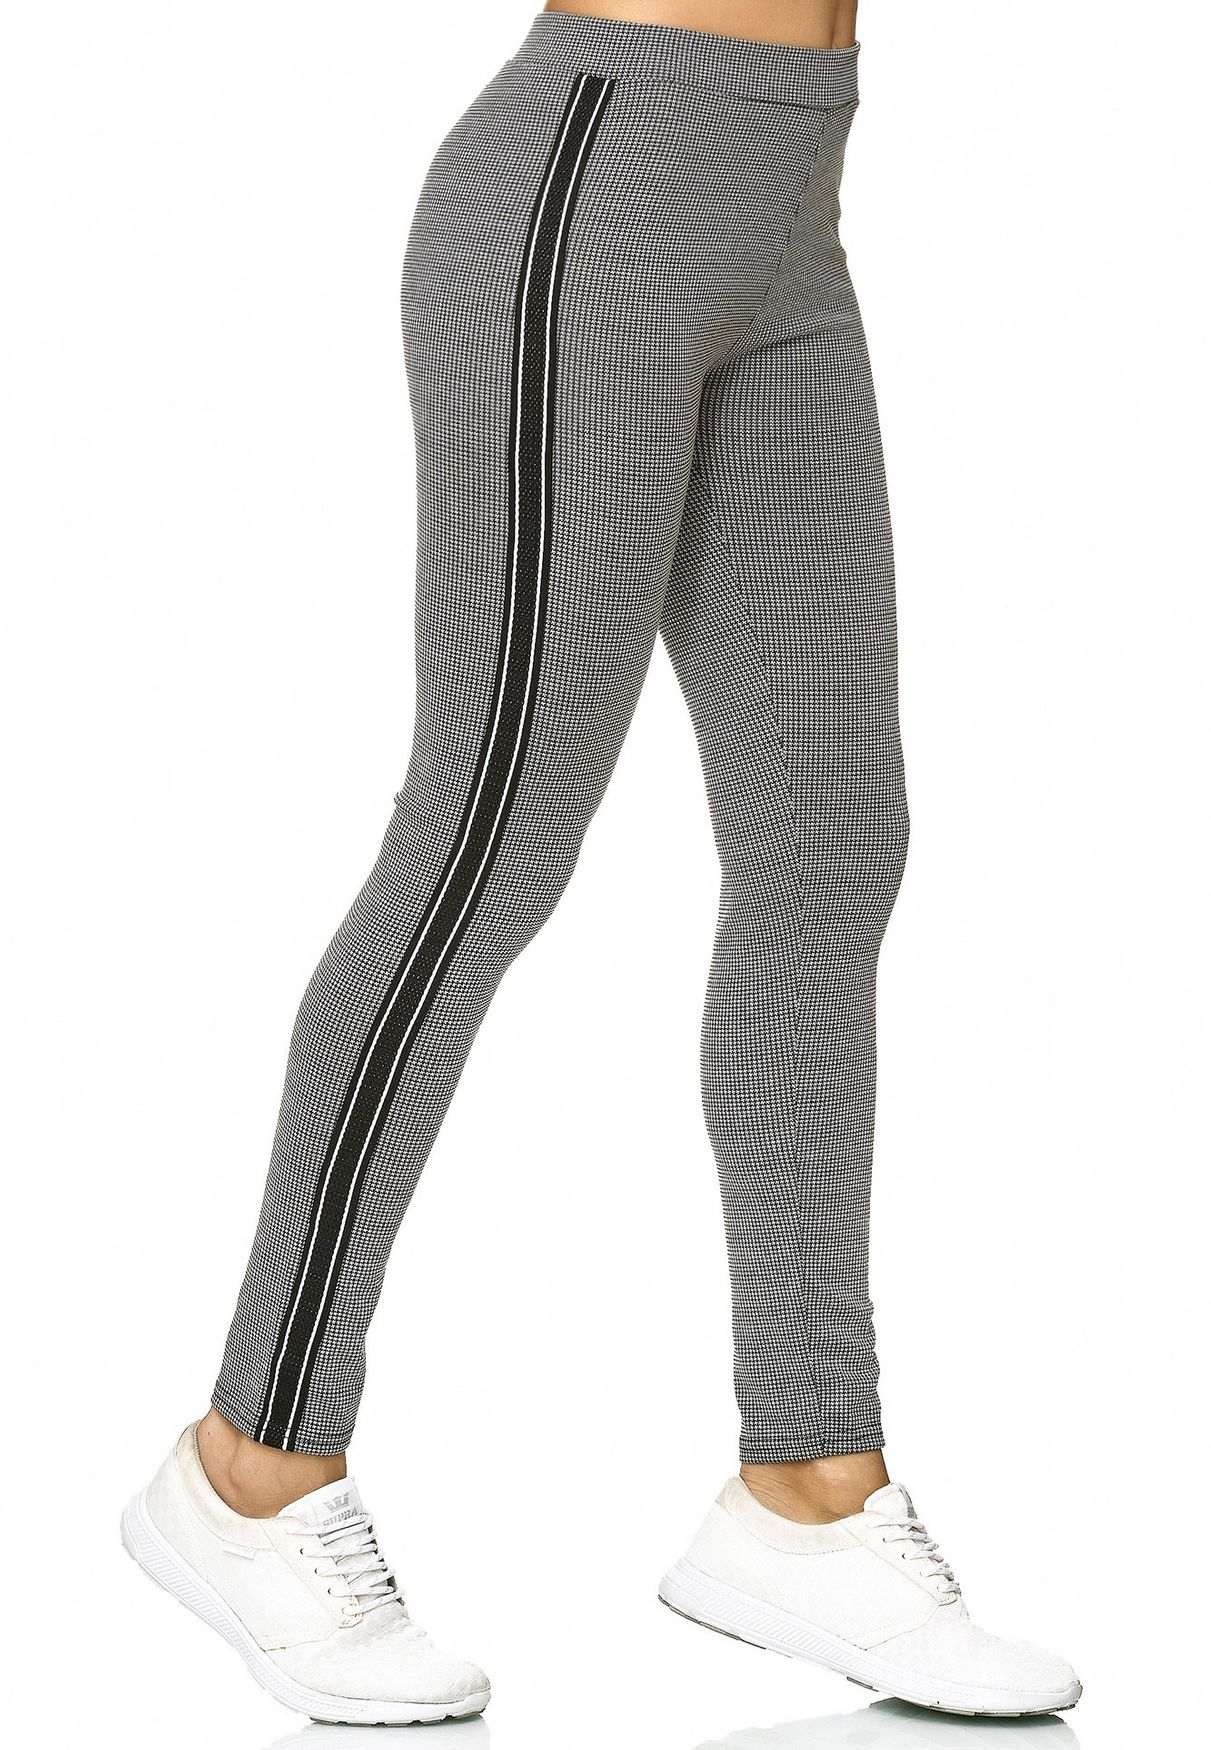 4e48b1efb2 Damen Leggings Stretch Hose MIRANDA | arizona-shopping.de